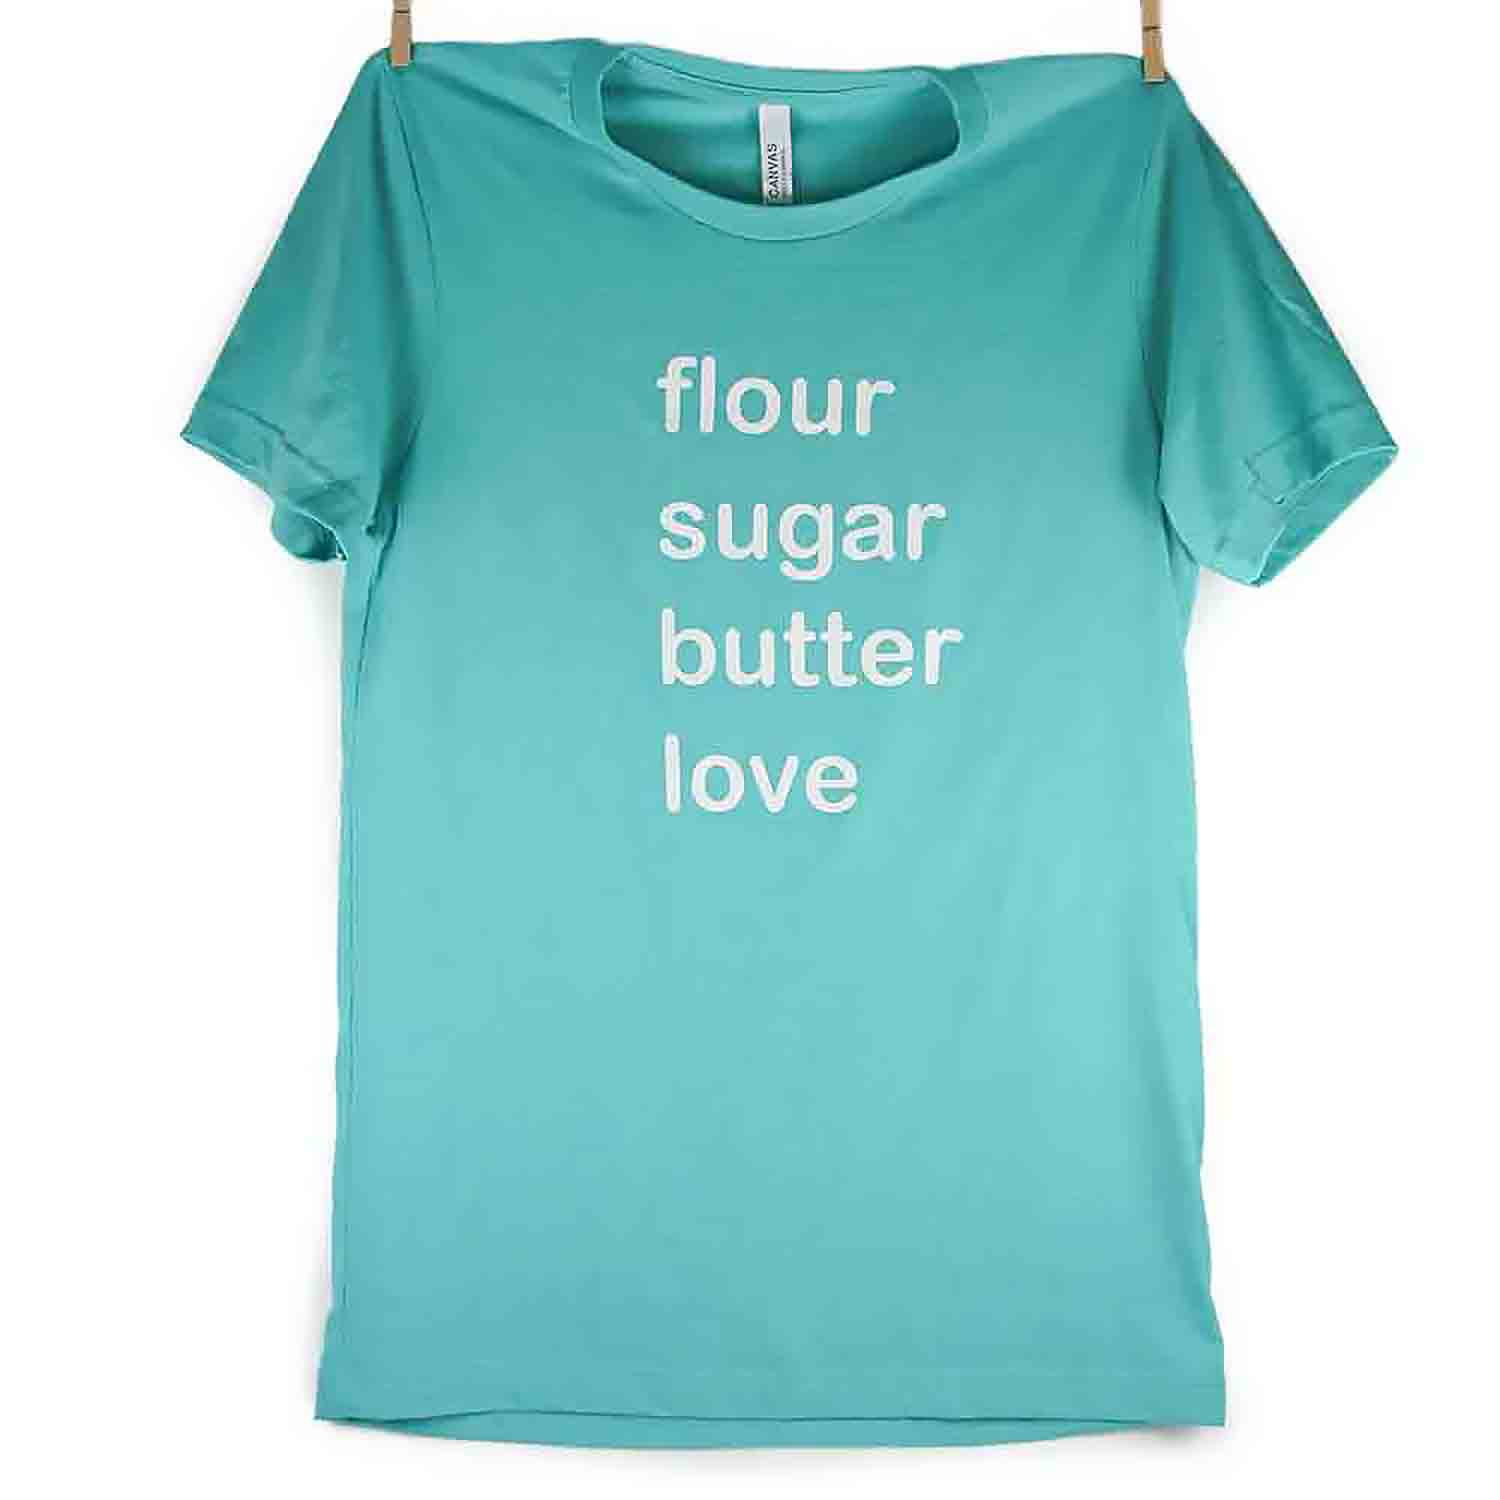 Teal Flour Sugar Butter Love T-Shirt - Extra Large